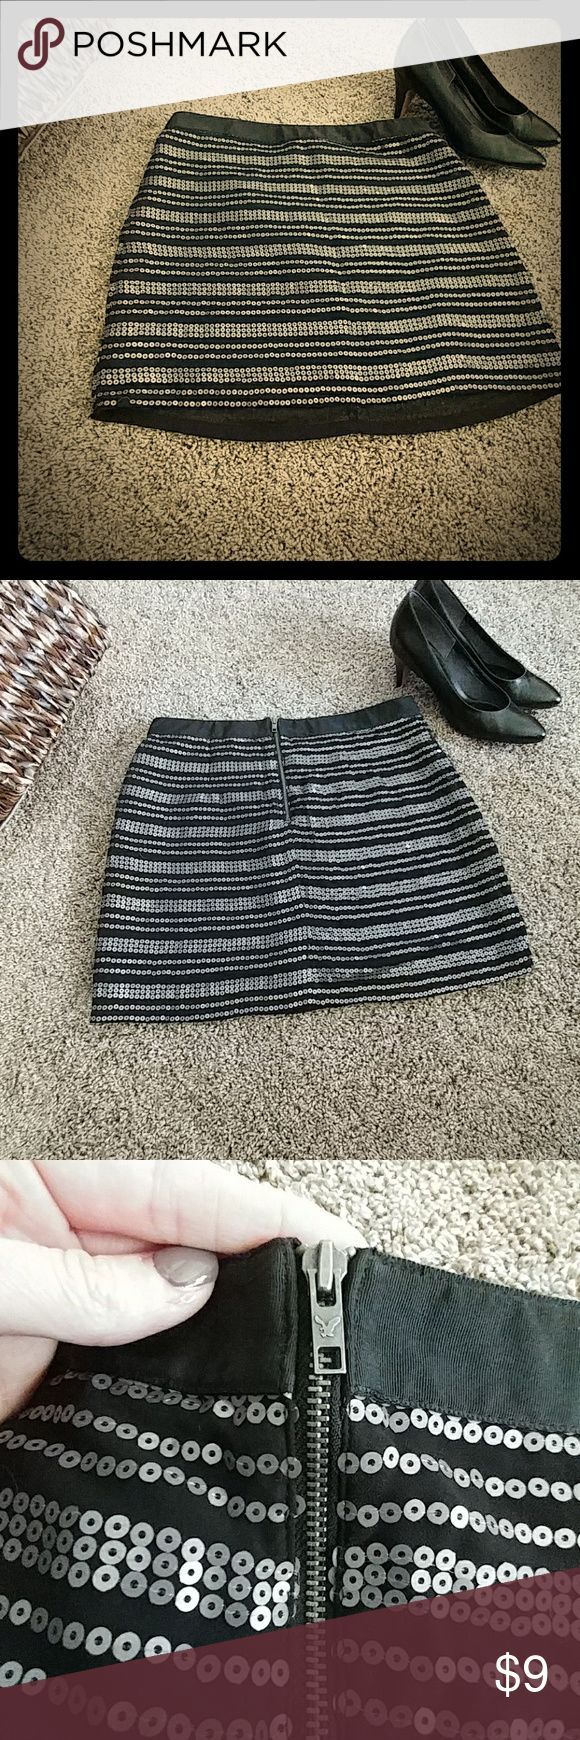 AEO Mini Skirt Super cute and flashy layered mini skirt by American Eagle. In EXCELLENT condition. No issues at all. Silver sequins cover the skirt, front and back. Zipper in the back is a gray metal stamped with AE emblem.  This is a perfect piece for a girl's night out or a date night with your ??!!  Total length is 16 in. Thanks!! American Eagle Outfitters Skirts